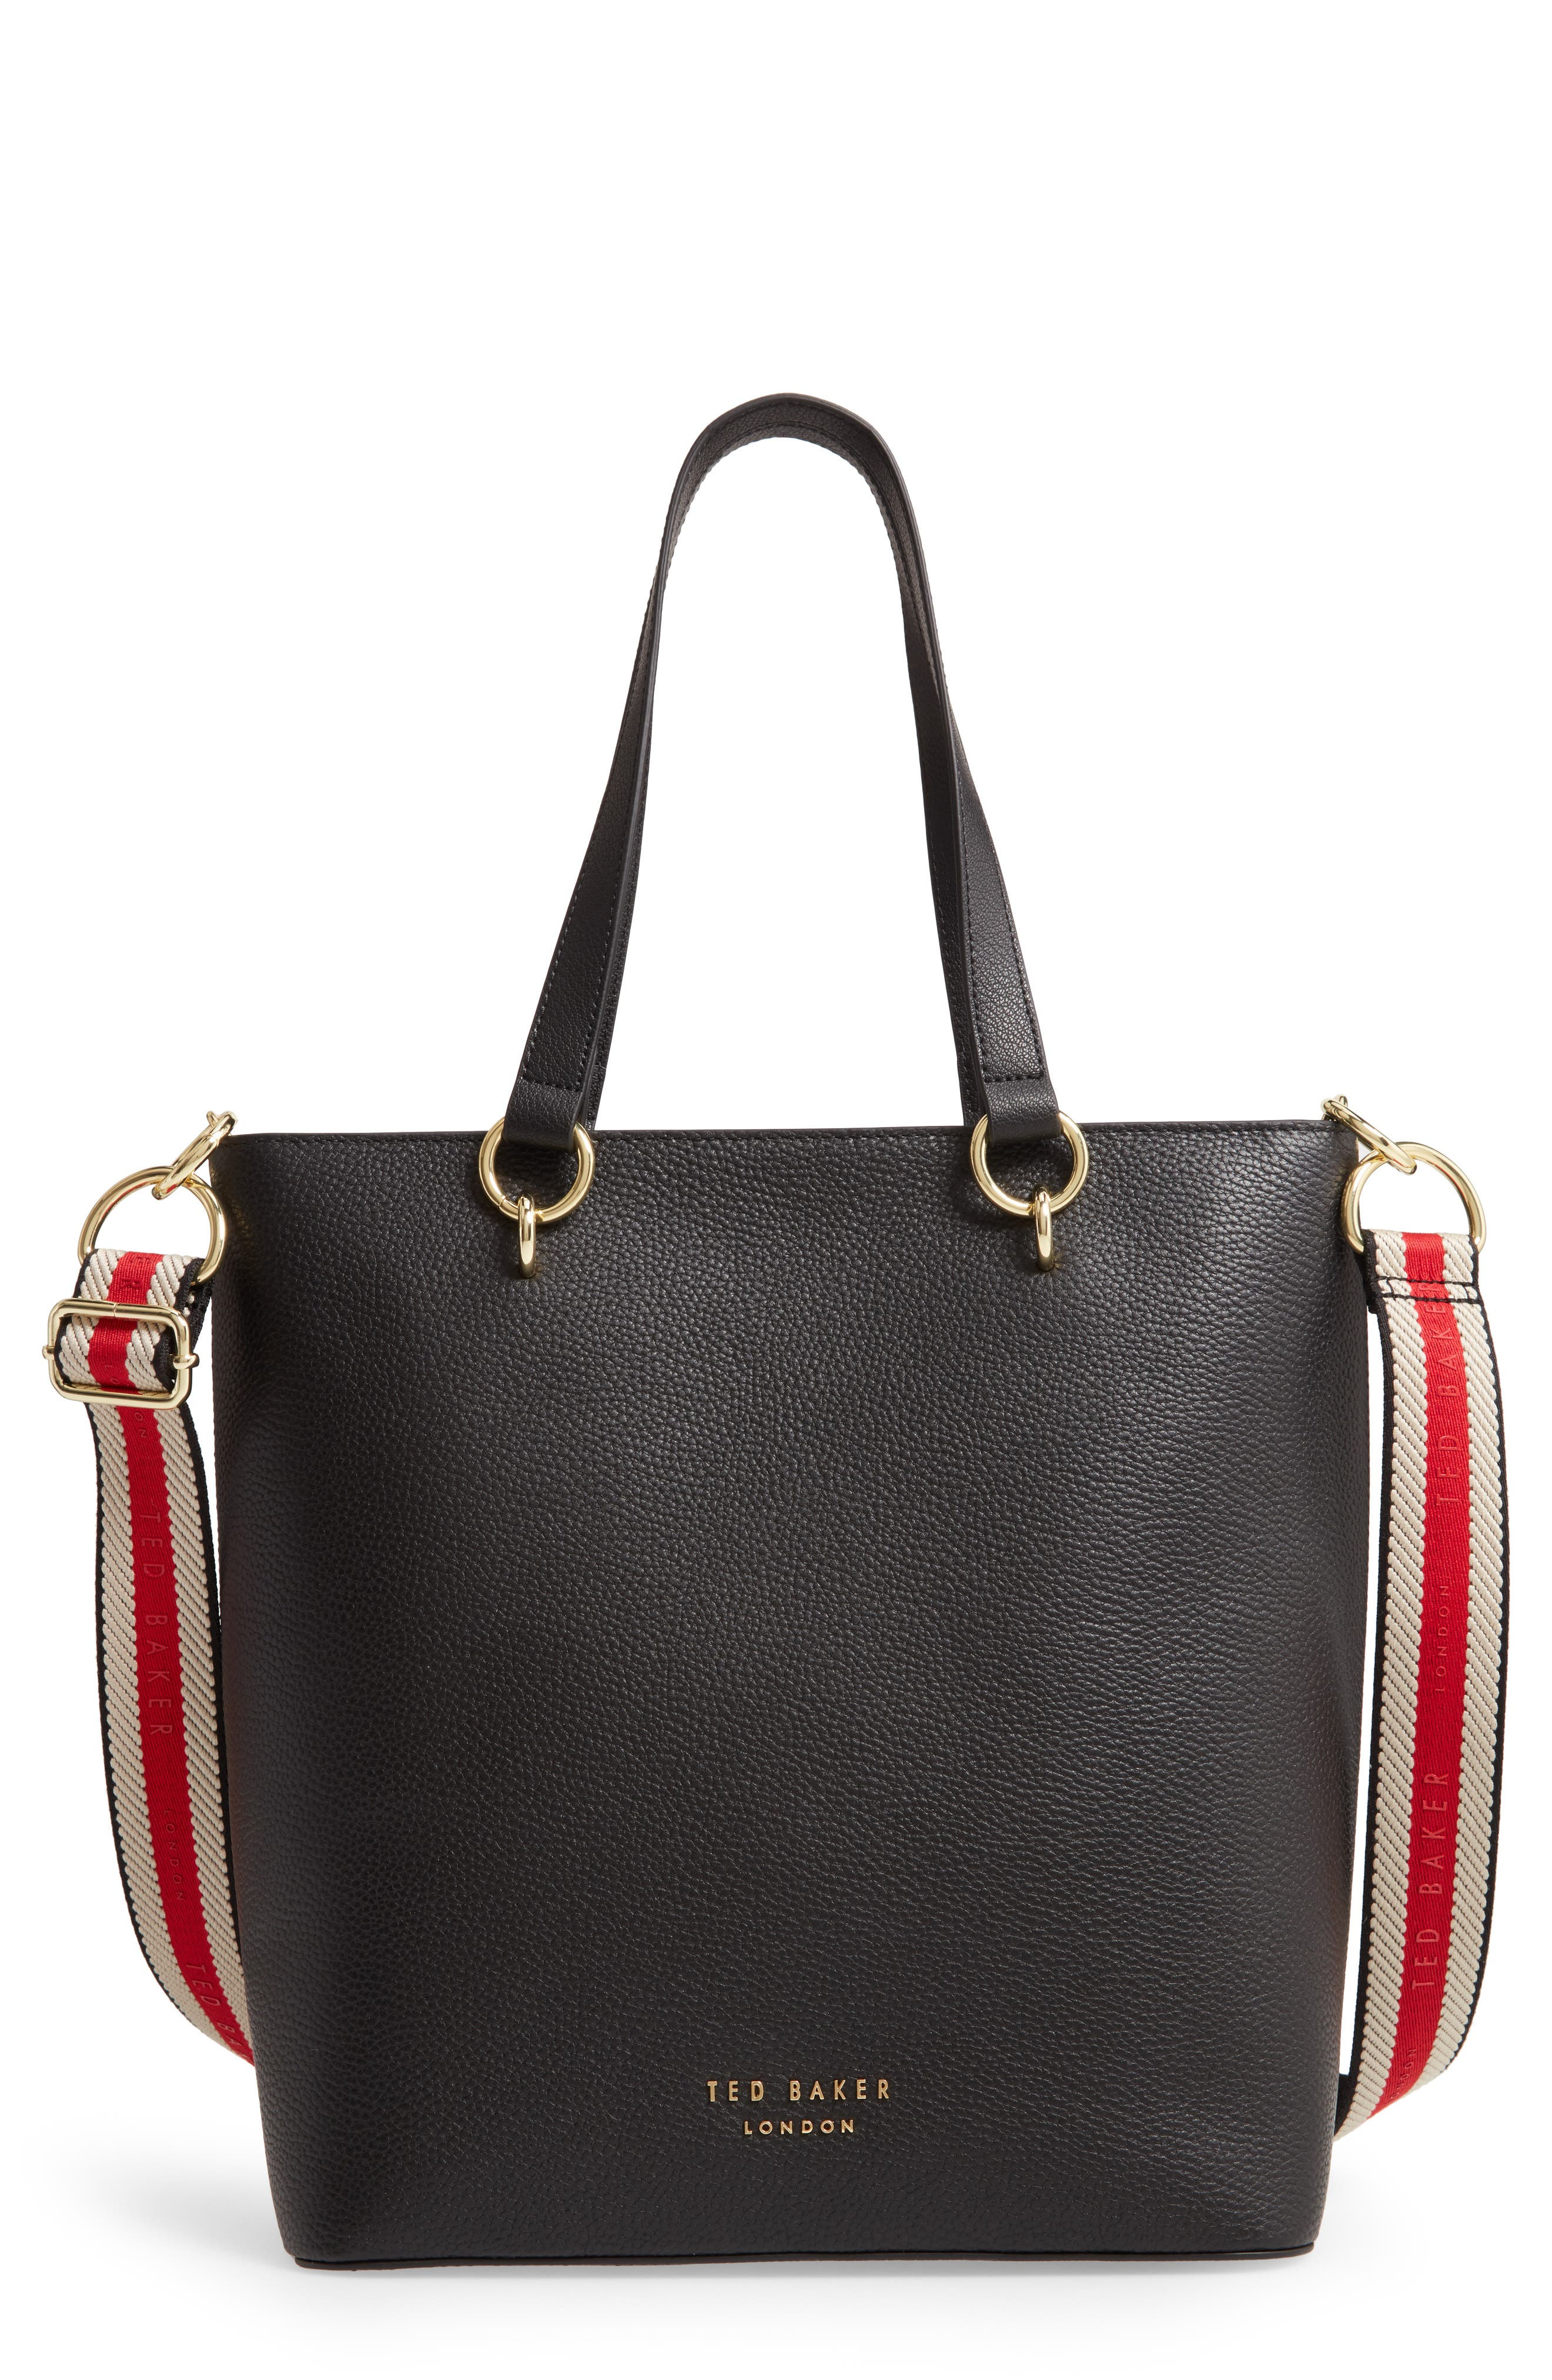 This grainy leather tote has two shoulder straps that lie flat on the sides when you mix it up using the sporty striped and branded webbed strap. Style Name: Ted Baker London Amarie Branded Strap Tote. Style Number: 5997123. Available in stores.